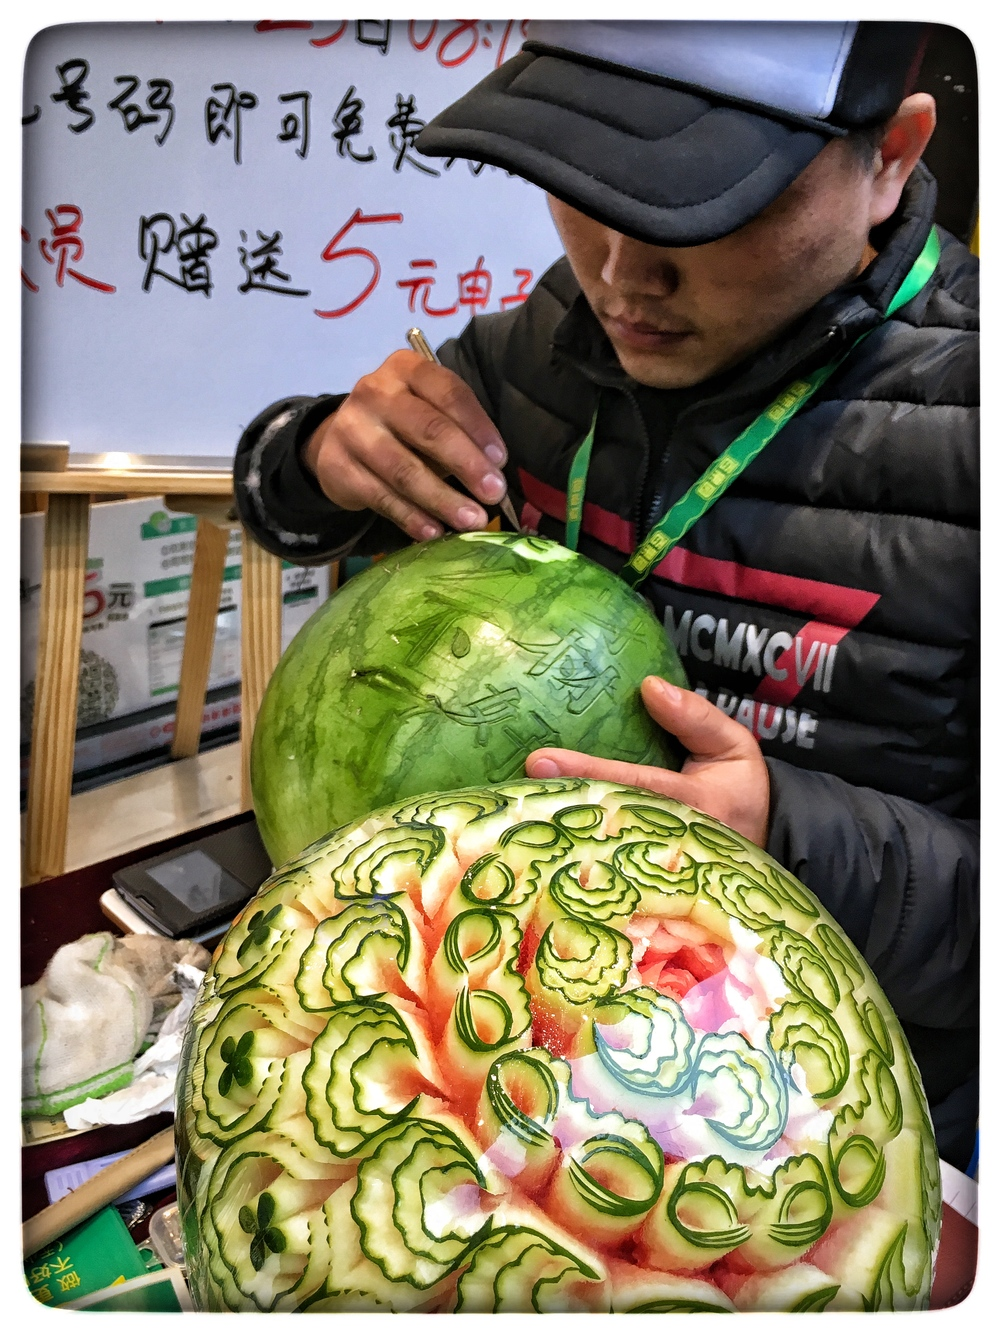 Watermelon carver, Wuhan